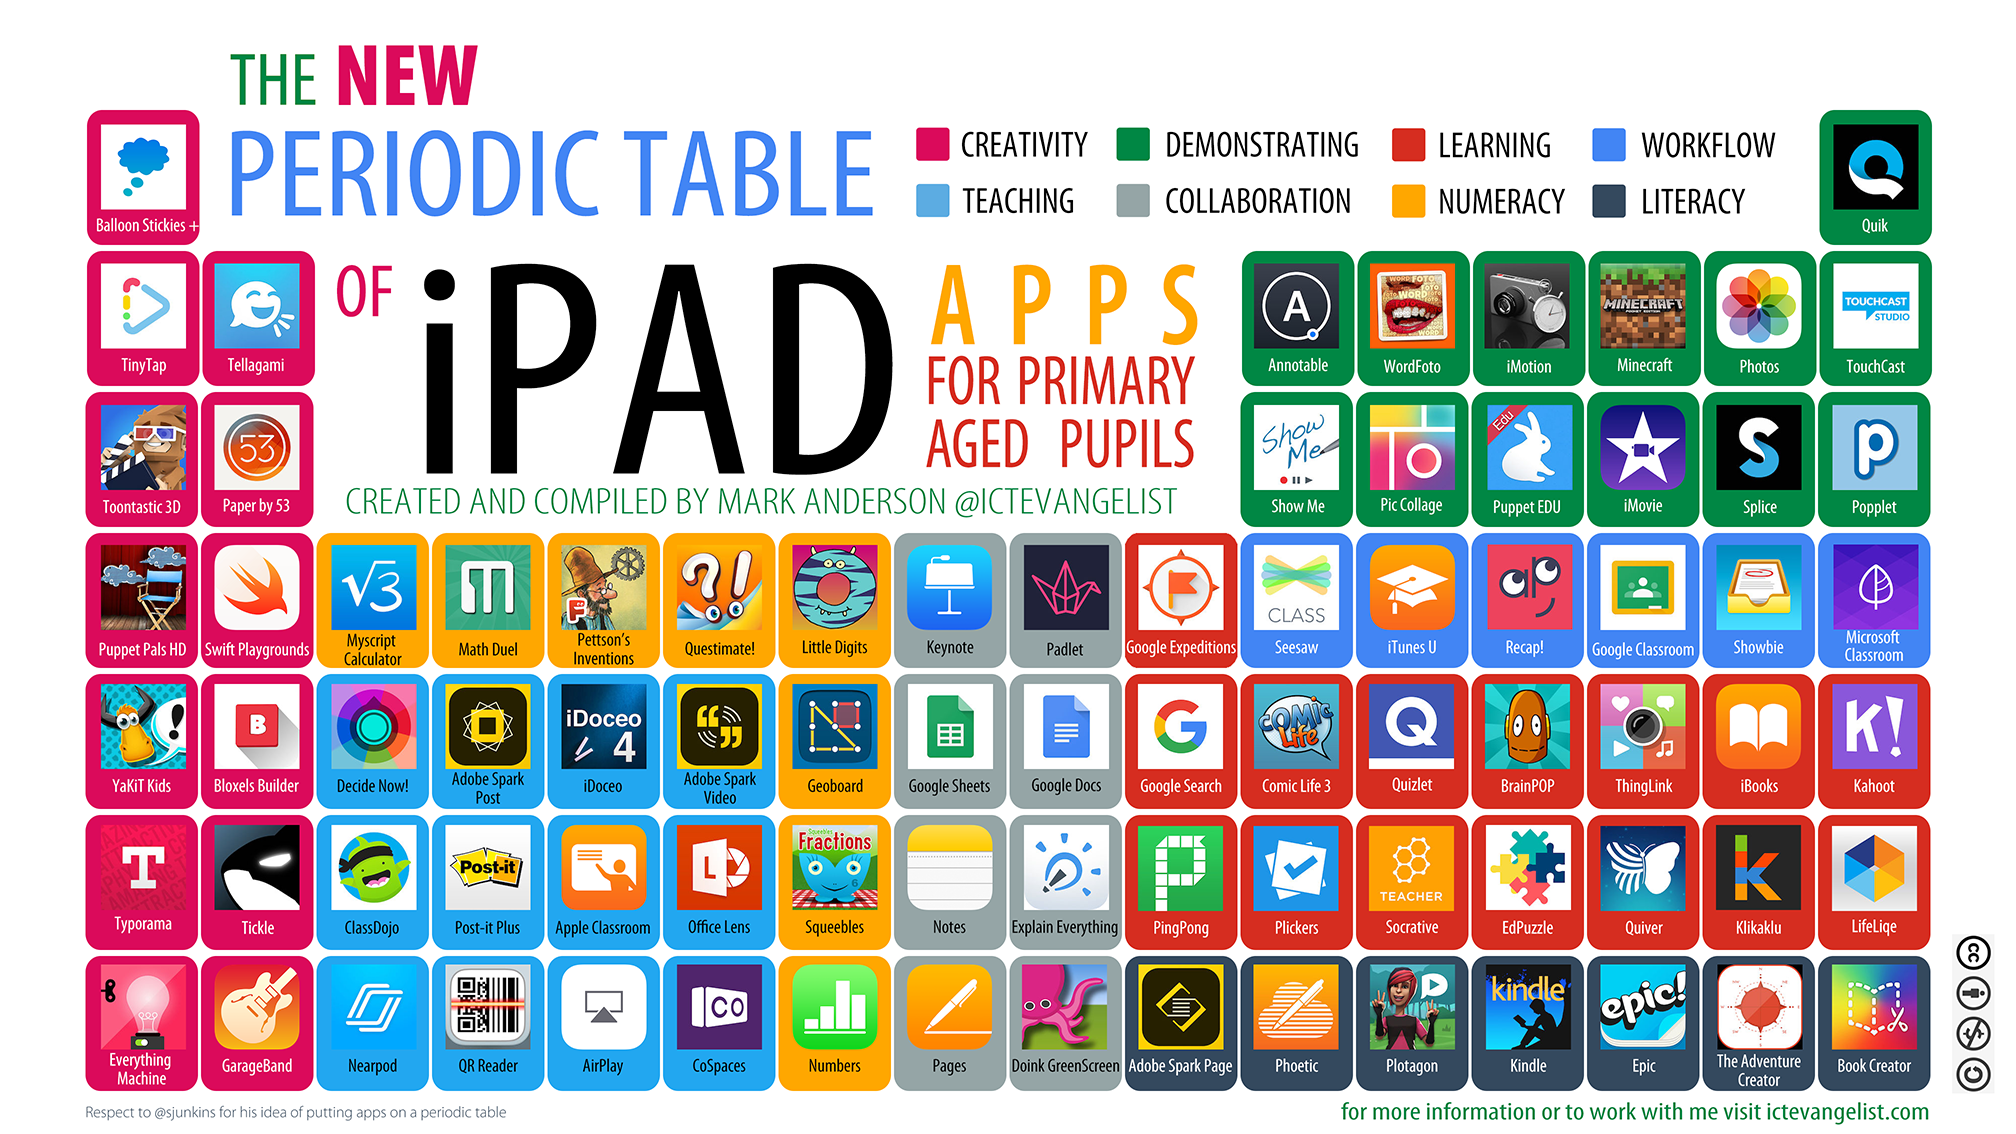 The new periodic table of ipad apps for primary aged pupils the periodic table of ipad apps for primary aged pupils urtaz Gallery